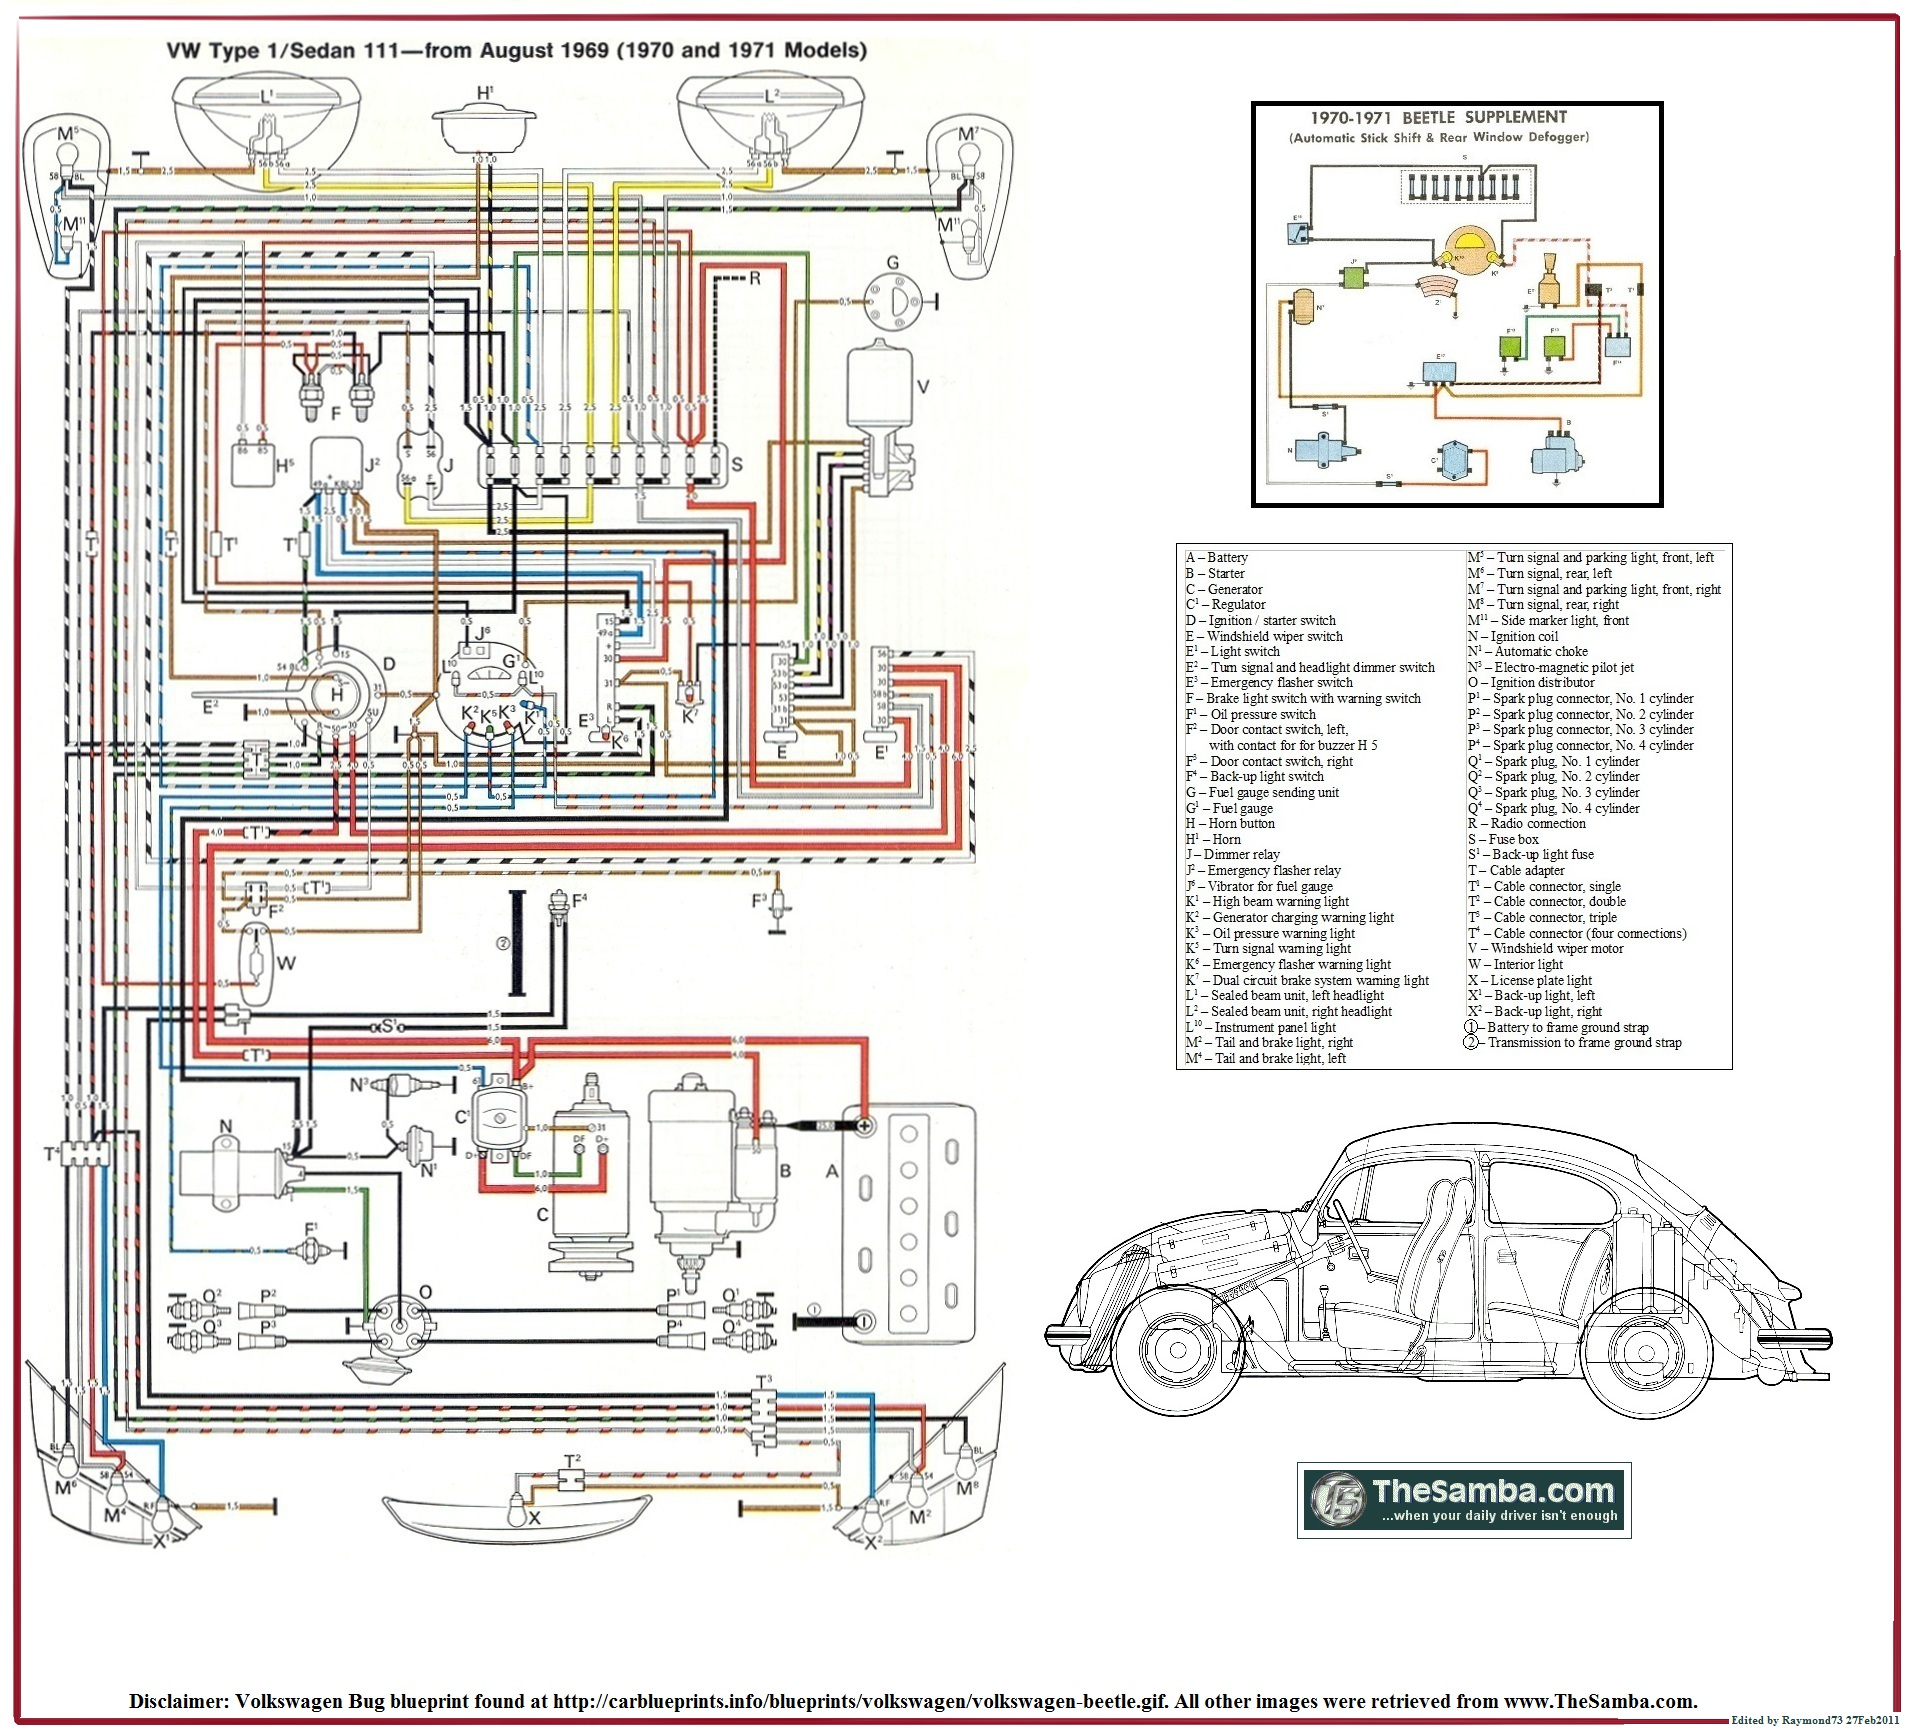 2002 vw golf stereo wiring diagram wiring diagram and hernes vw car radio stereo audio wiring diagram autoradio connector wire